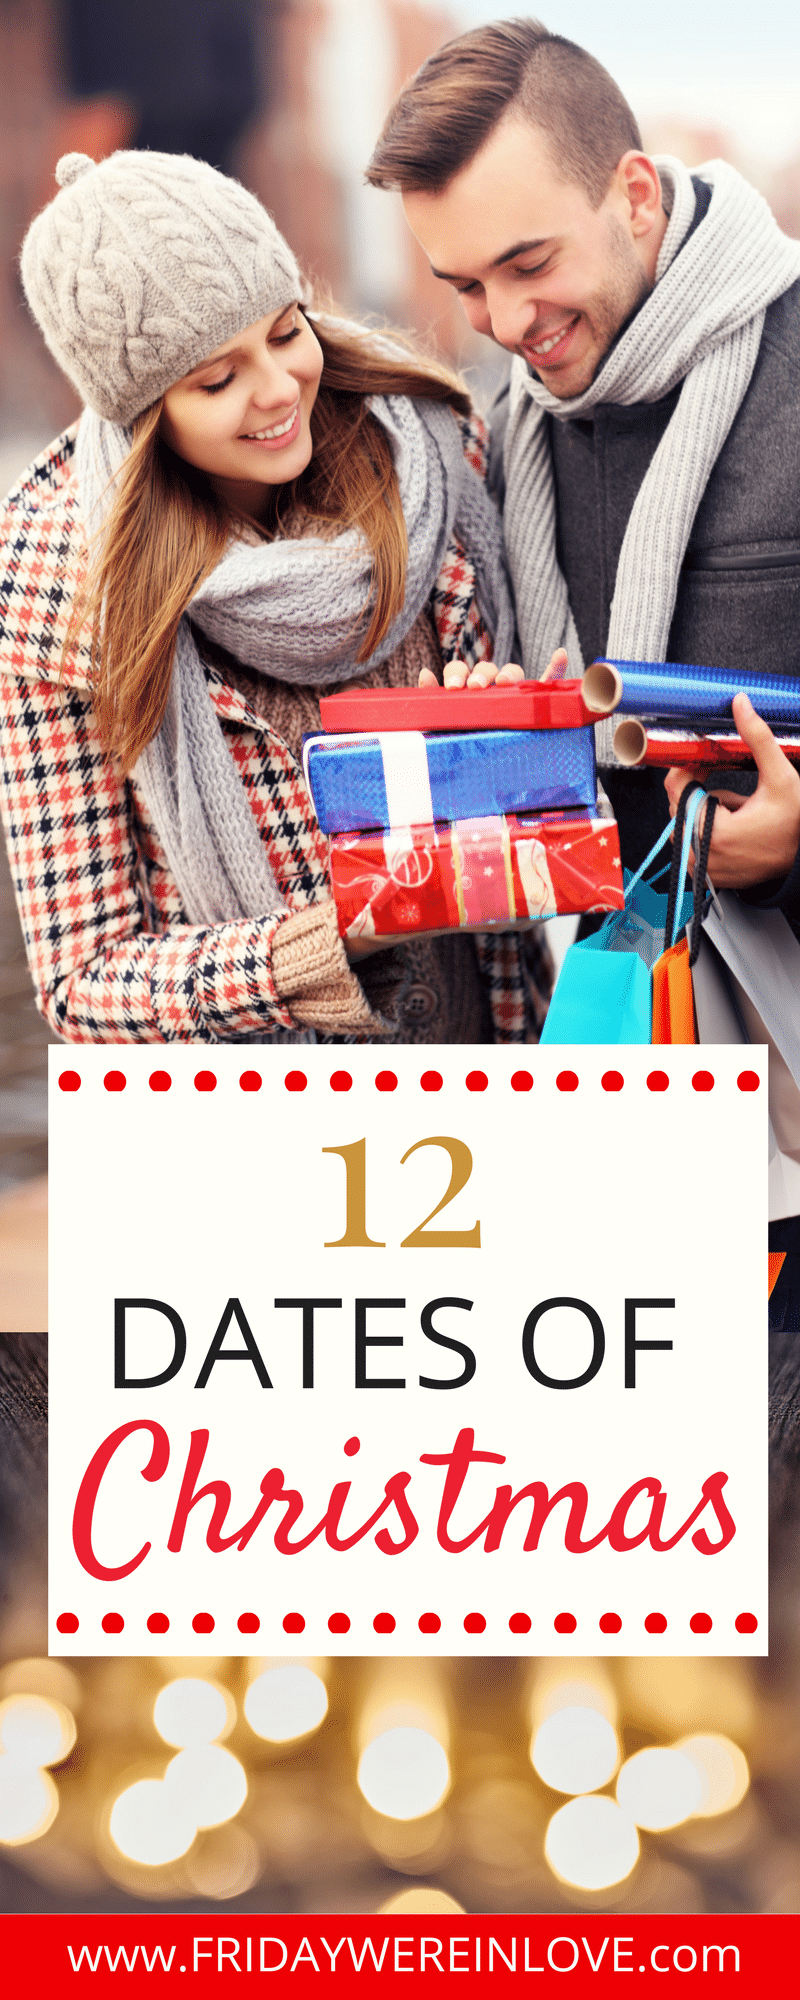 12 Dates Of Christmas.The 12 Dates Of Christmas Christmas Date Ideas Gift